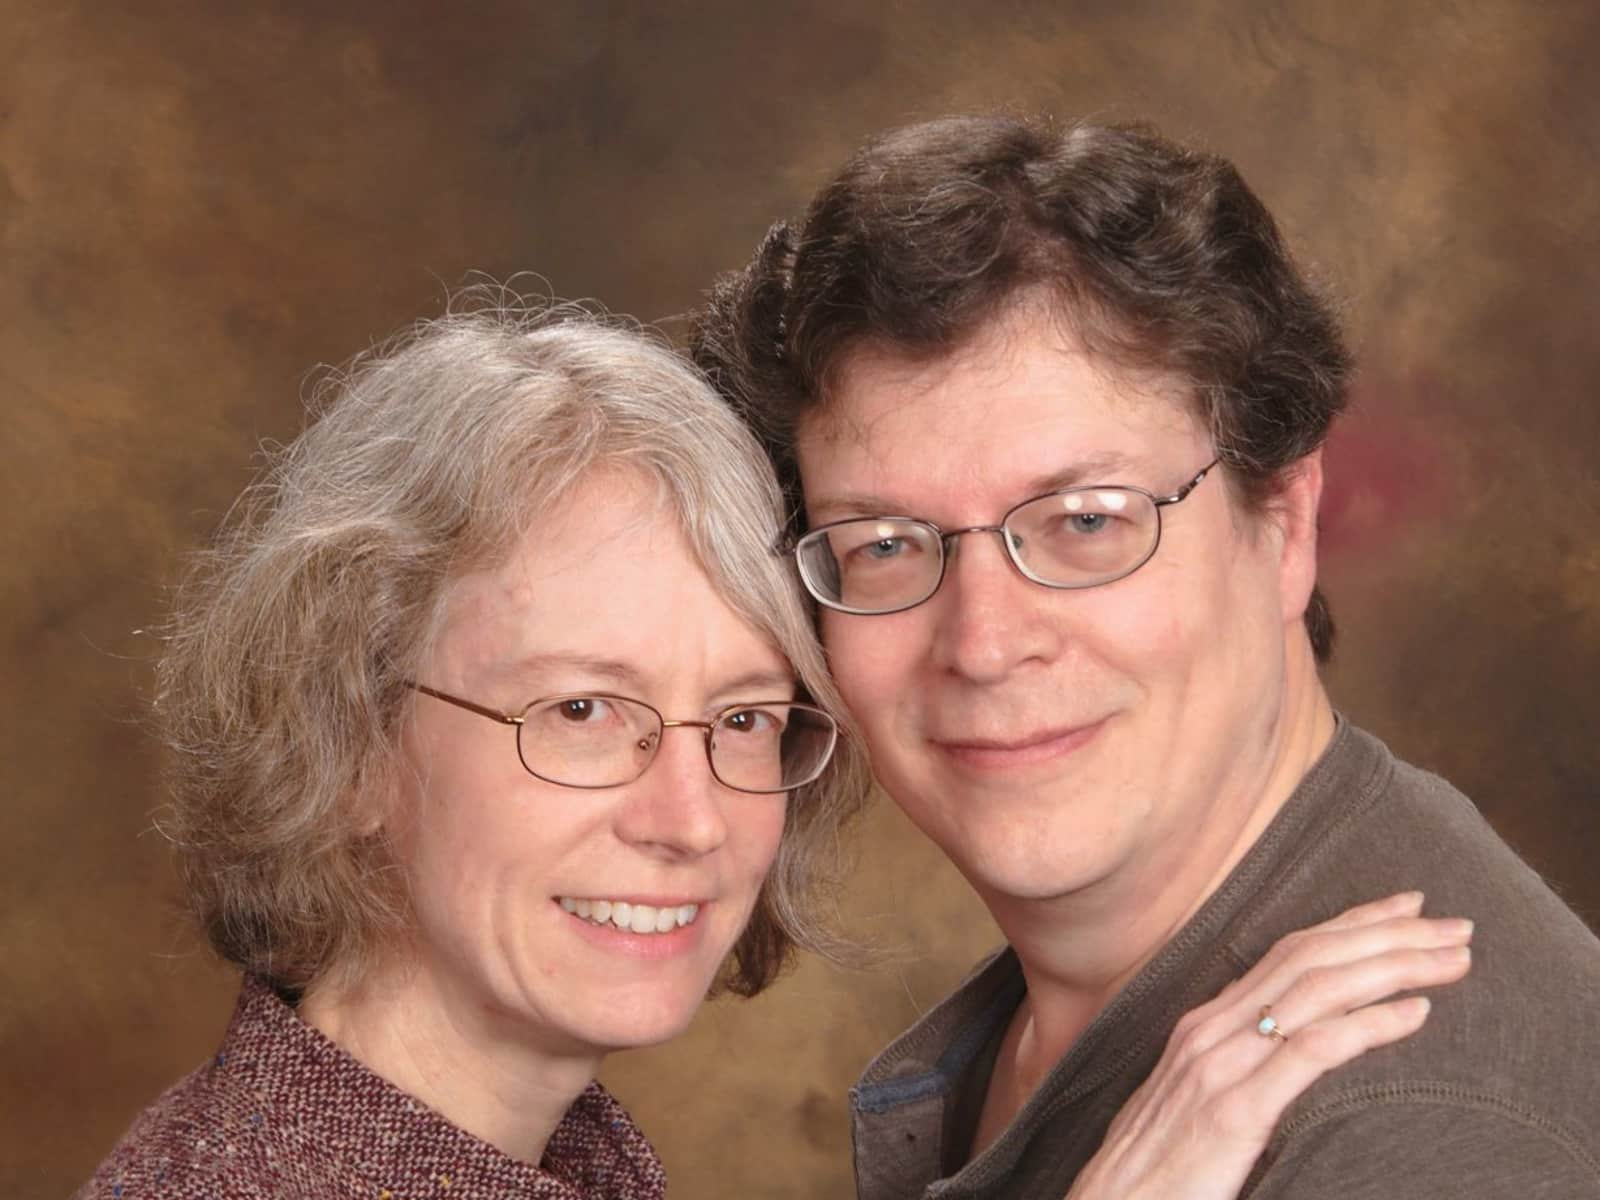 Wendy & Dave from Rockford, Illinois, United States